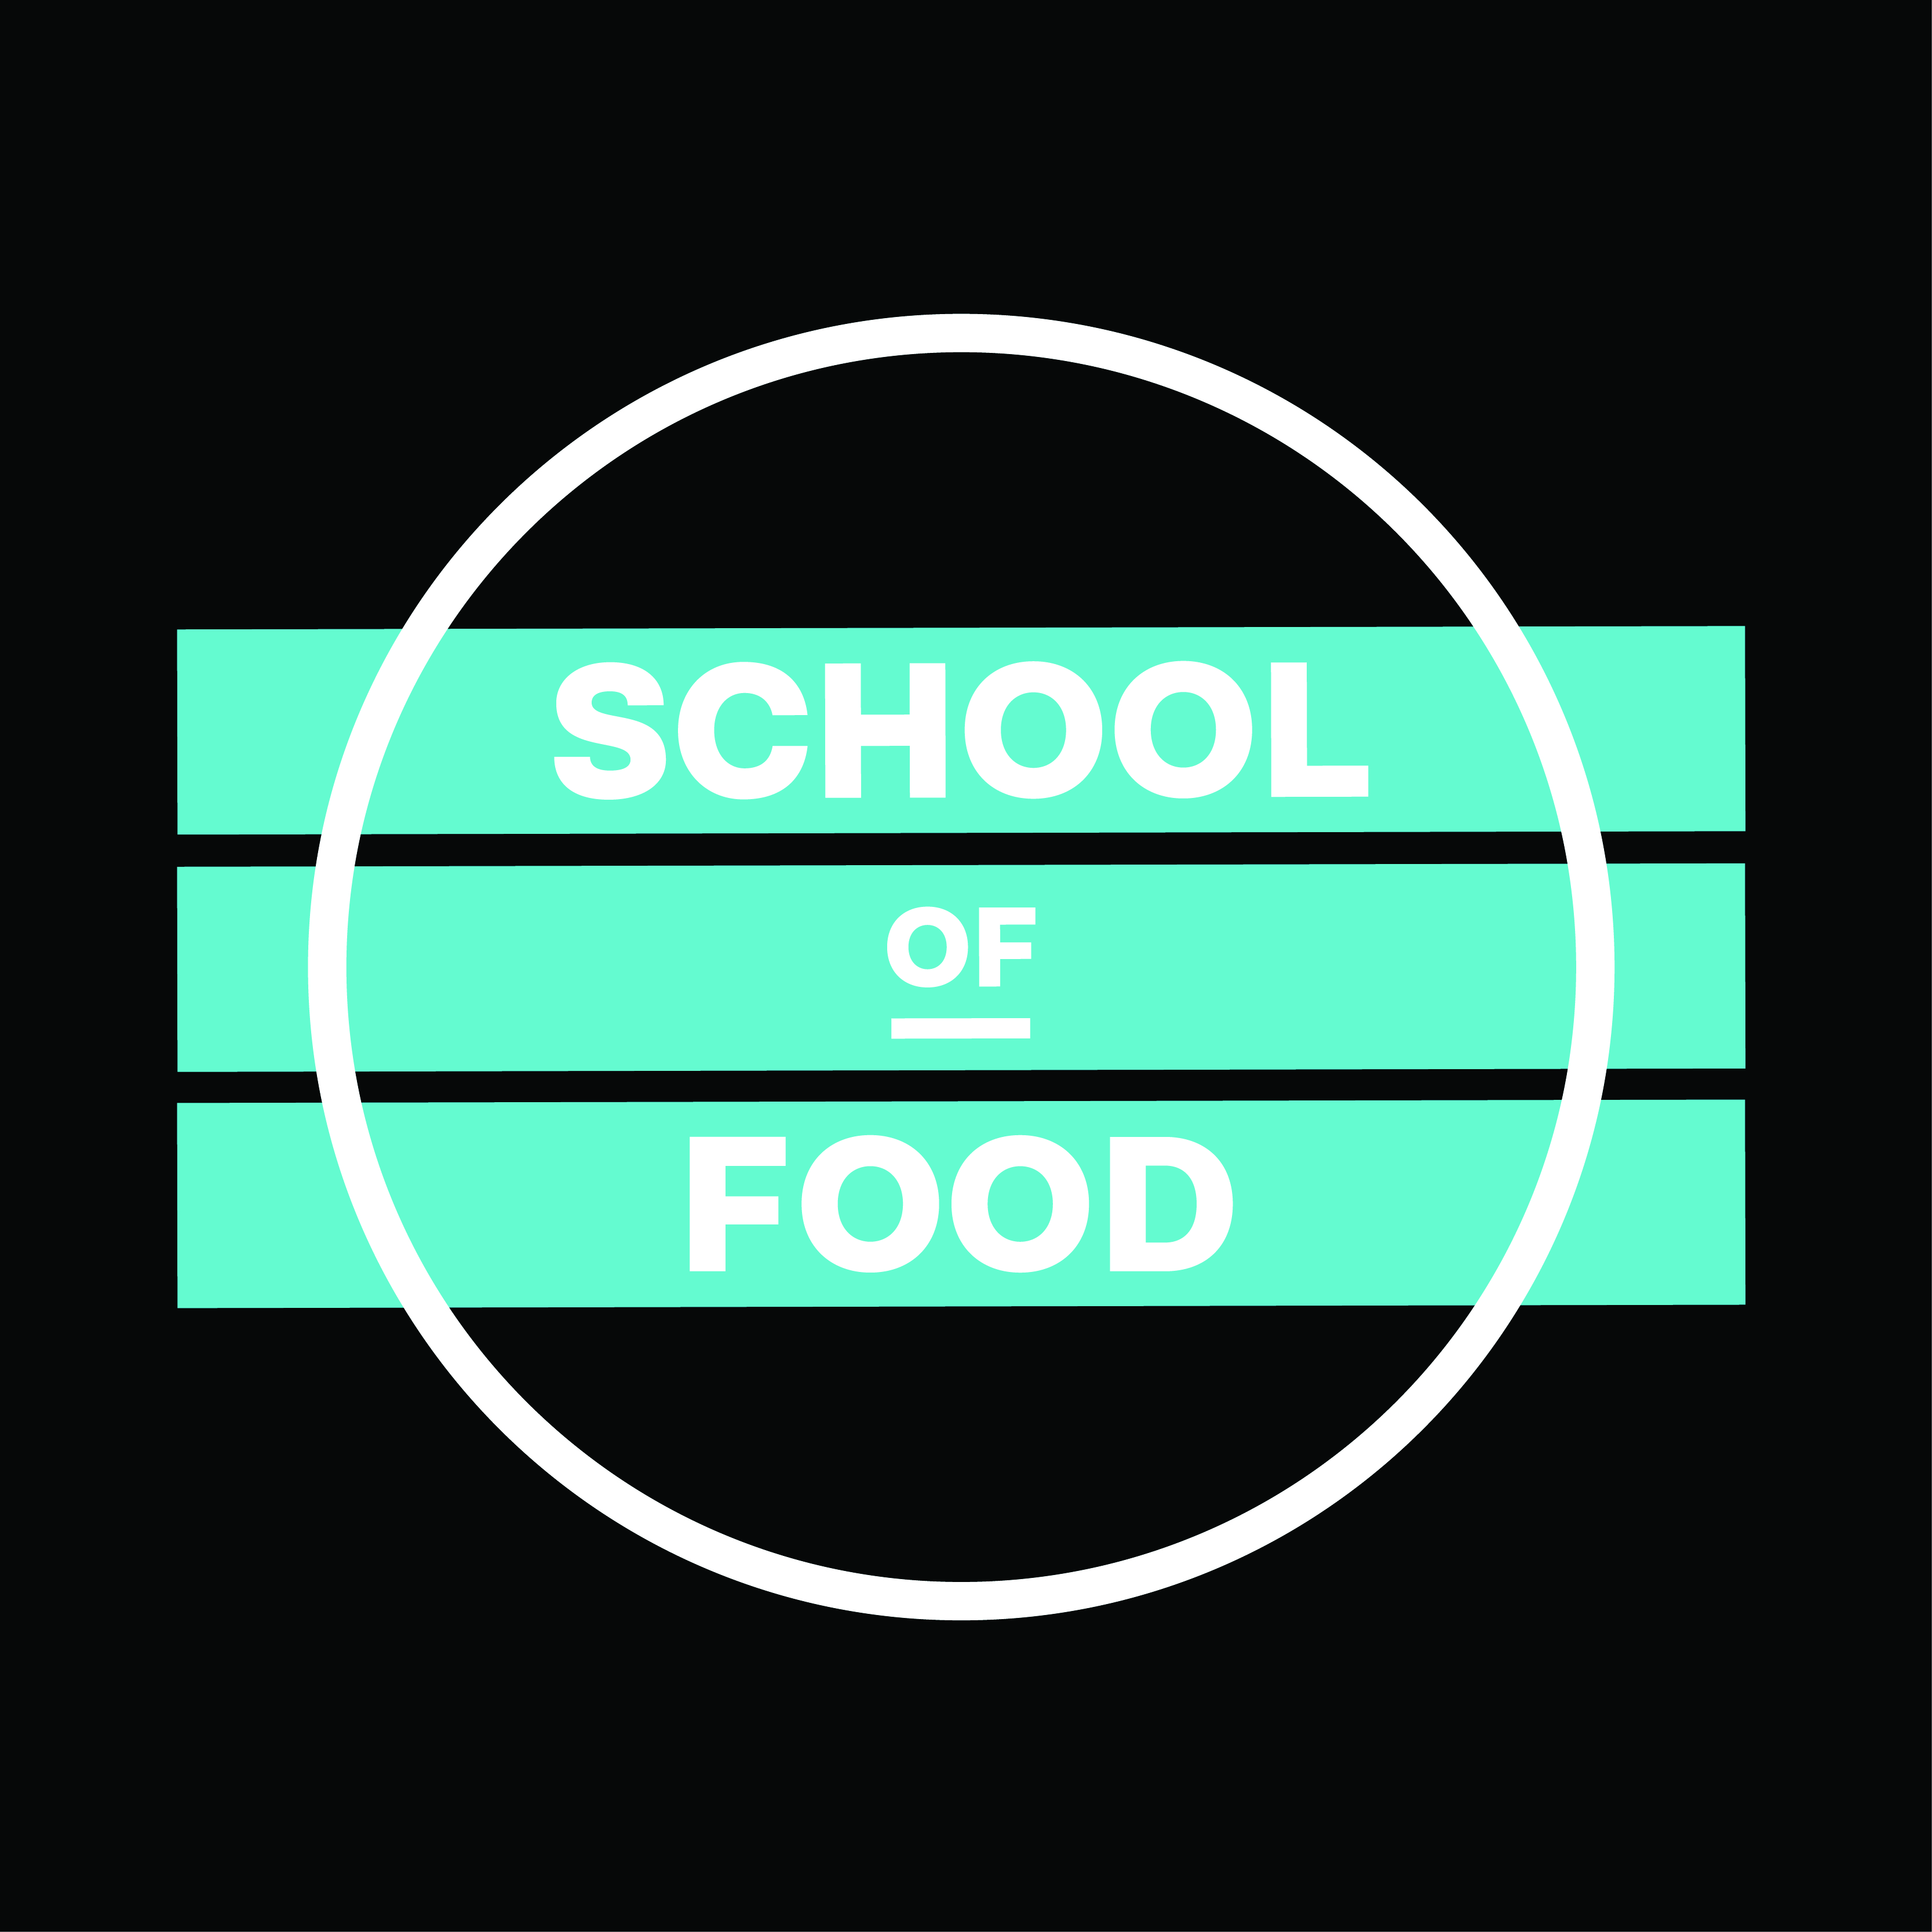 Join Mixolo Solos for a Molecular Gastronomy Cooking Class at School ...